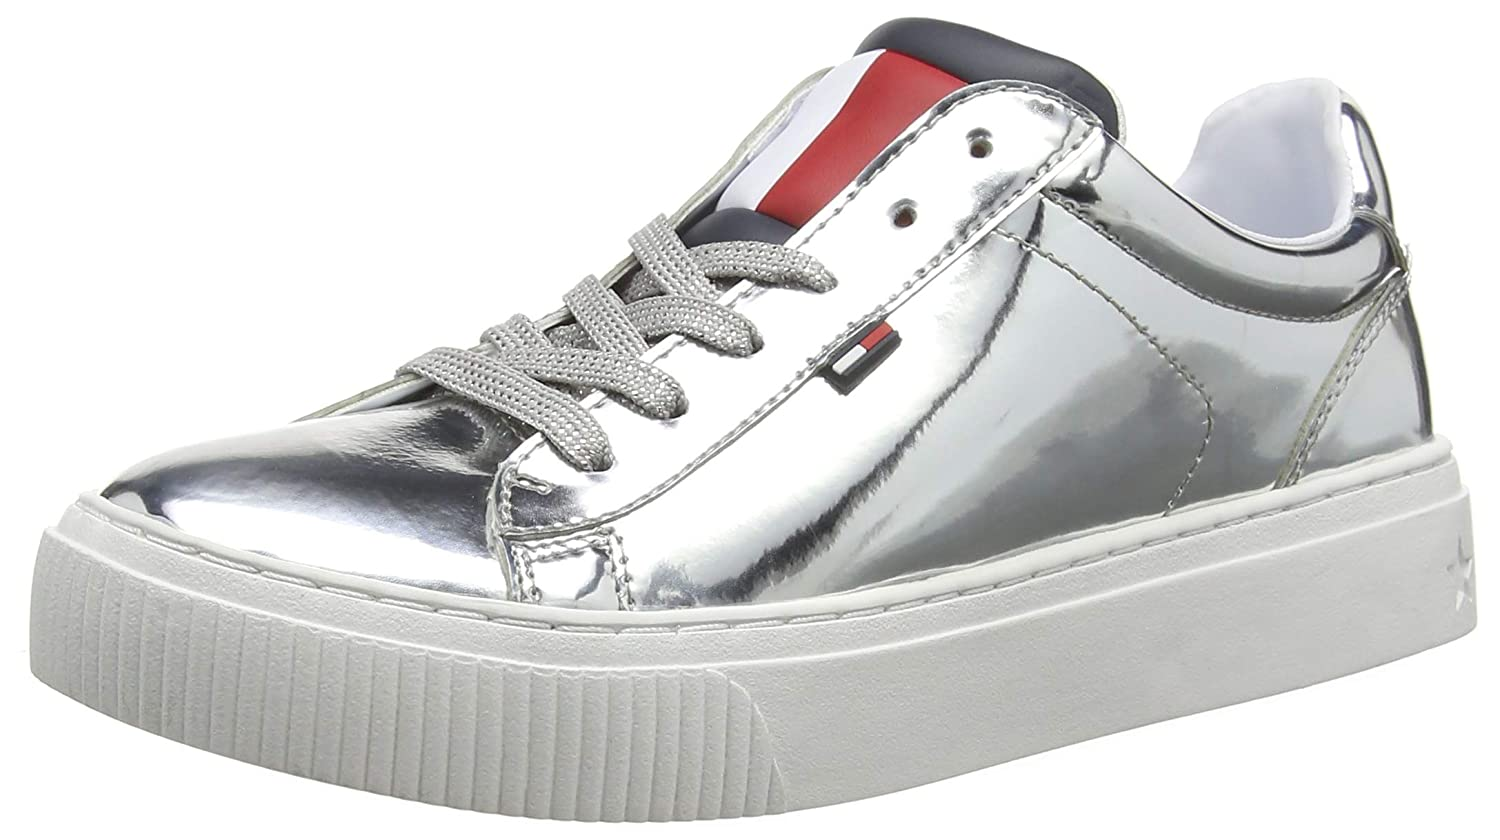 Hilfiger Denim Damen Big Flag Mirror Mirror Mirror Star Turnschuhe 189064